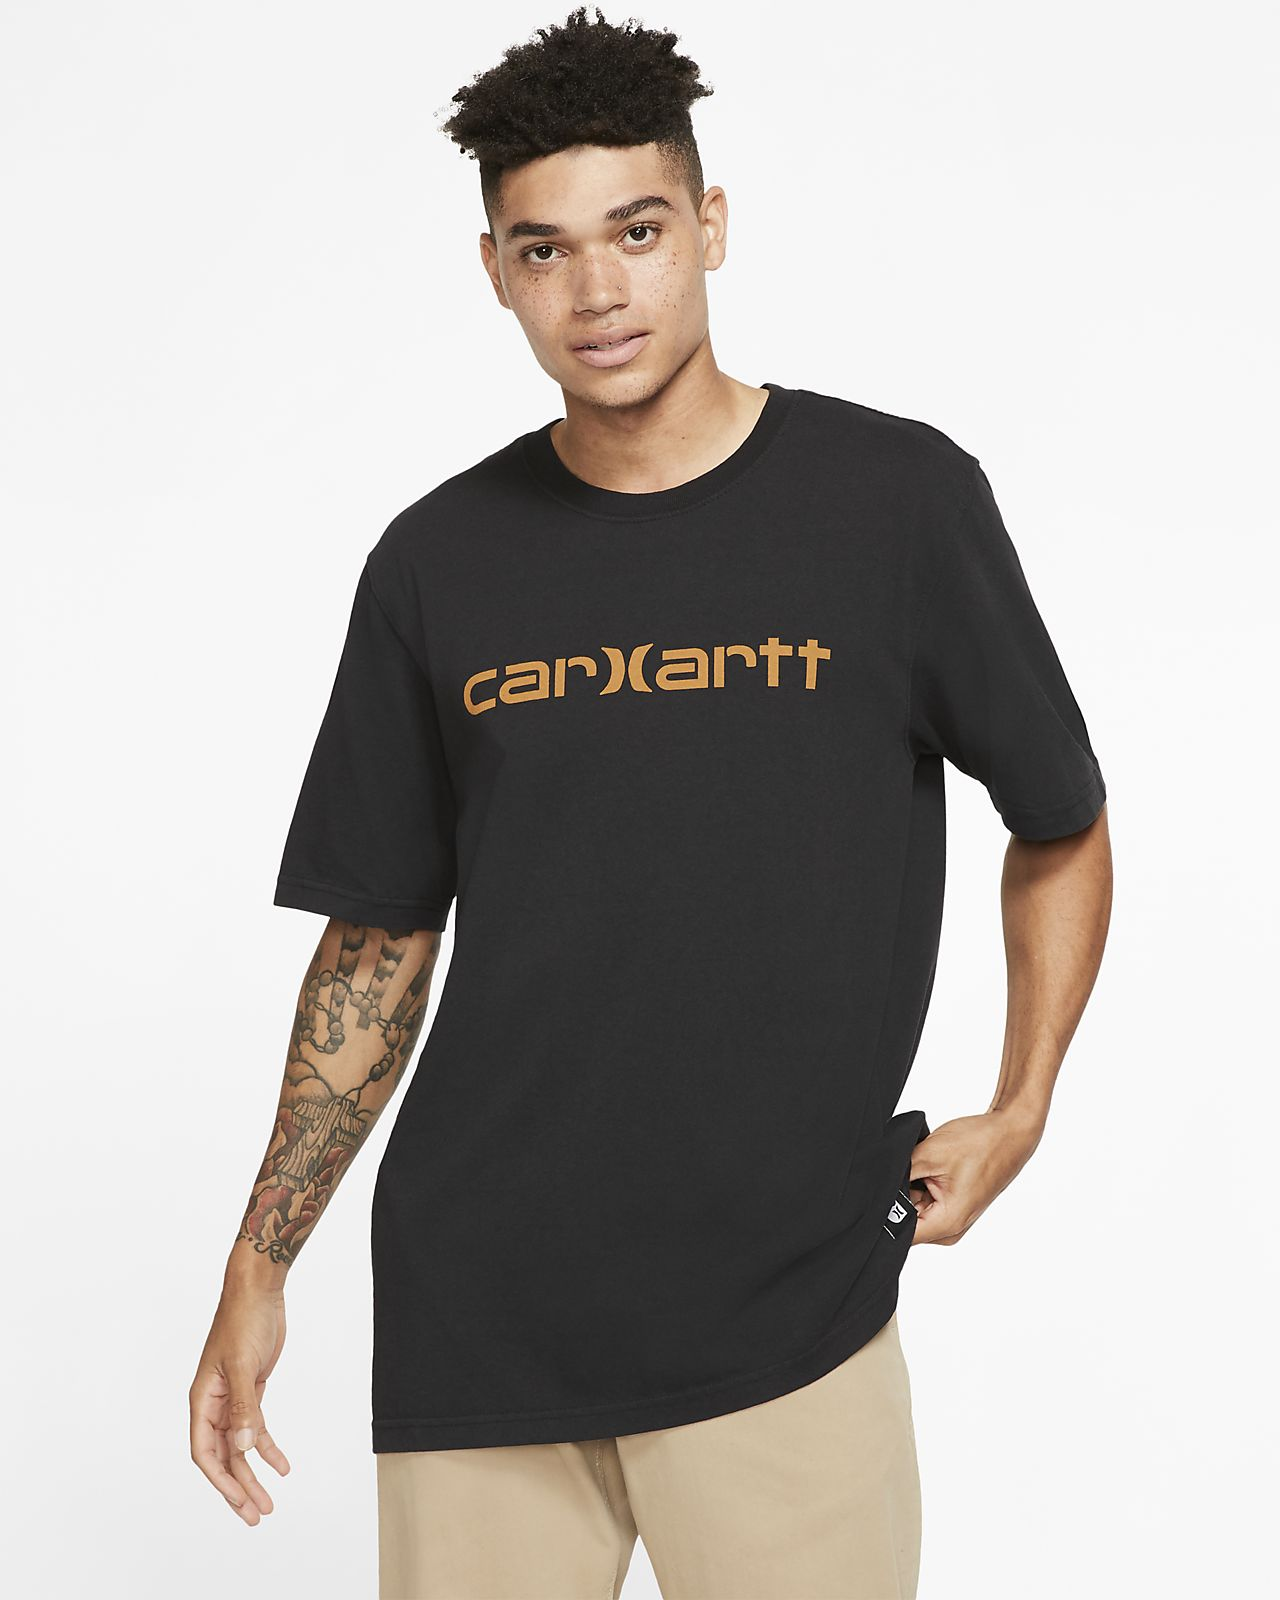 Hurley x Carhartt Lockup Men's T-Shirt